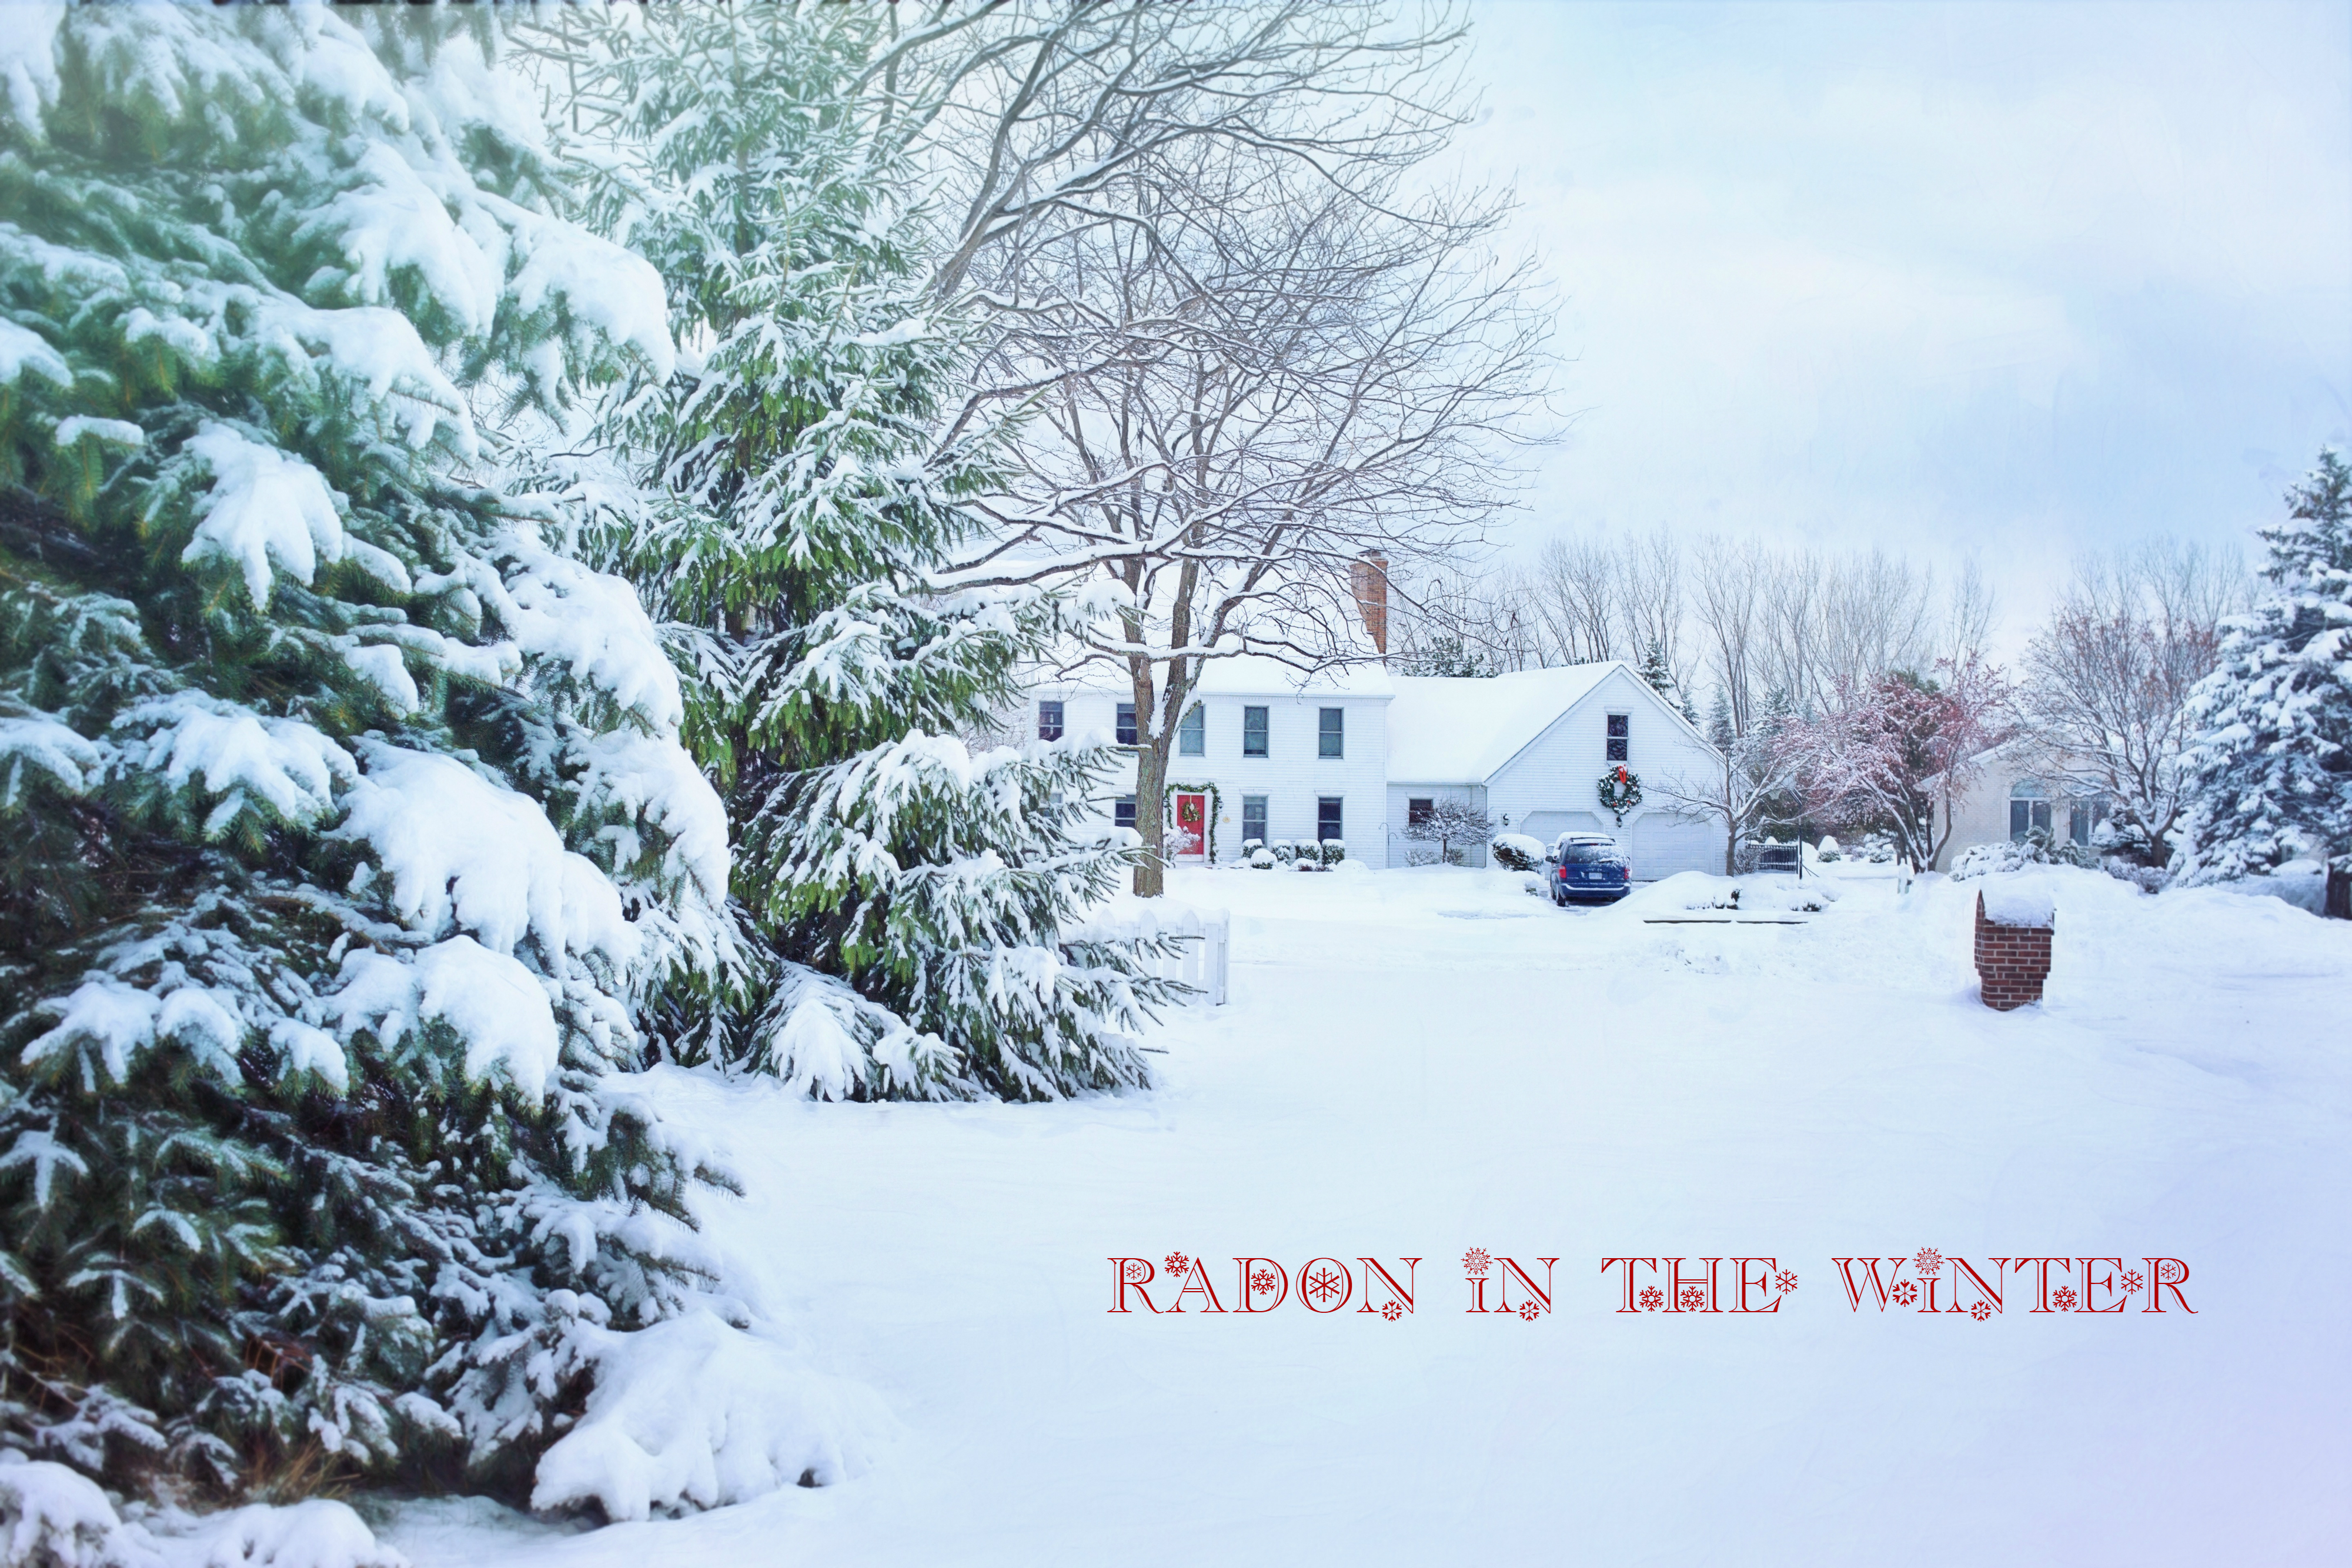 Radon Can Be Dangerous During the Winter